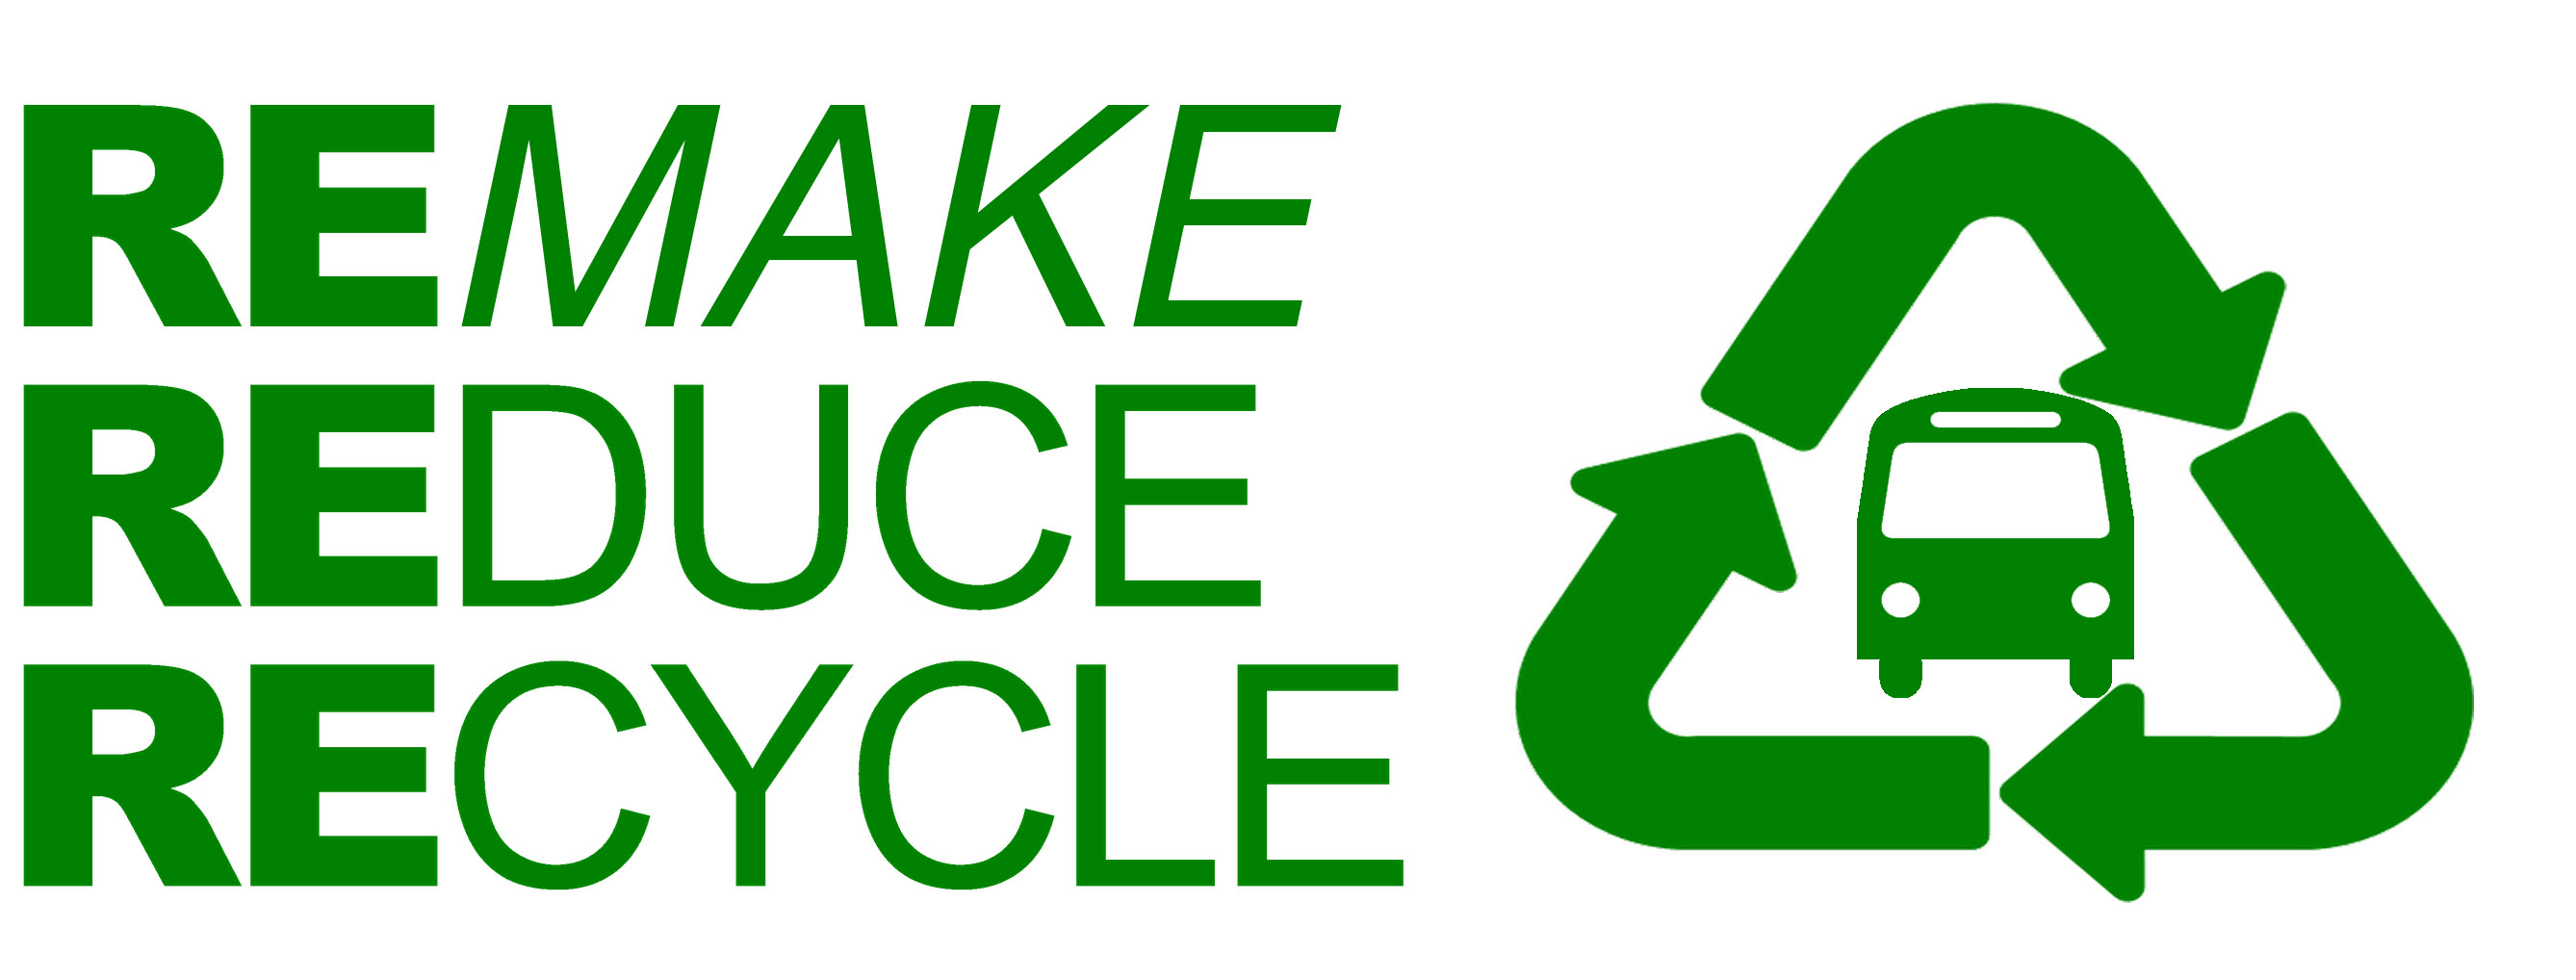 reduse reuse recycle Reduce, reuse and recycle guide – check out our handy reduce, reuse and recycle guide as a reference for where you can donate your unwanted items posting your unwanted items on one of the sites or listservs below is a great way to give them away for reuse.